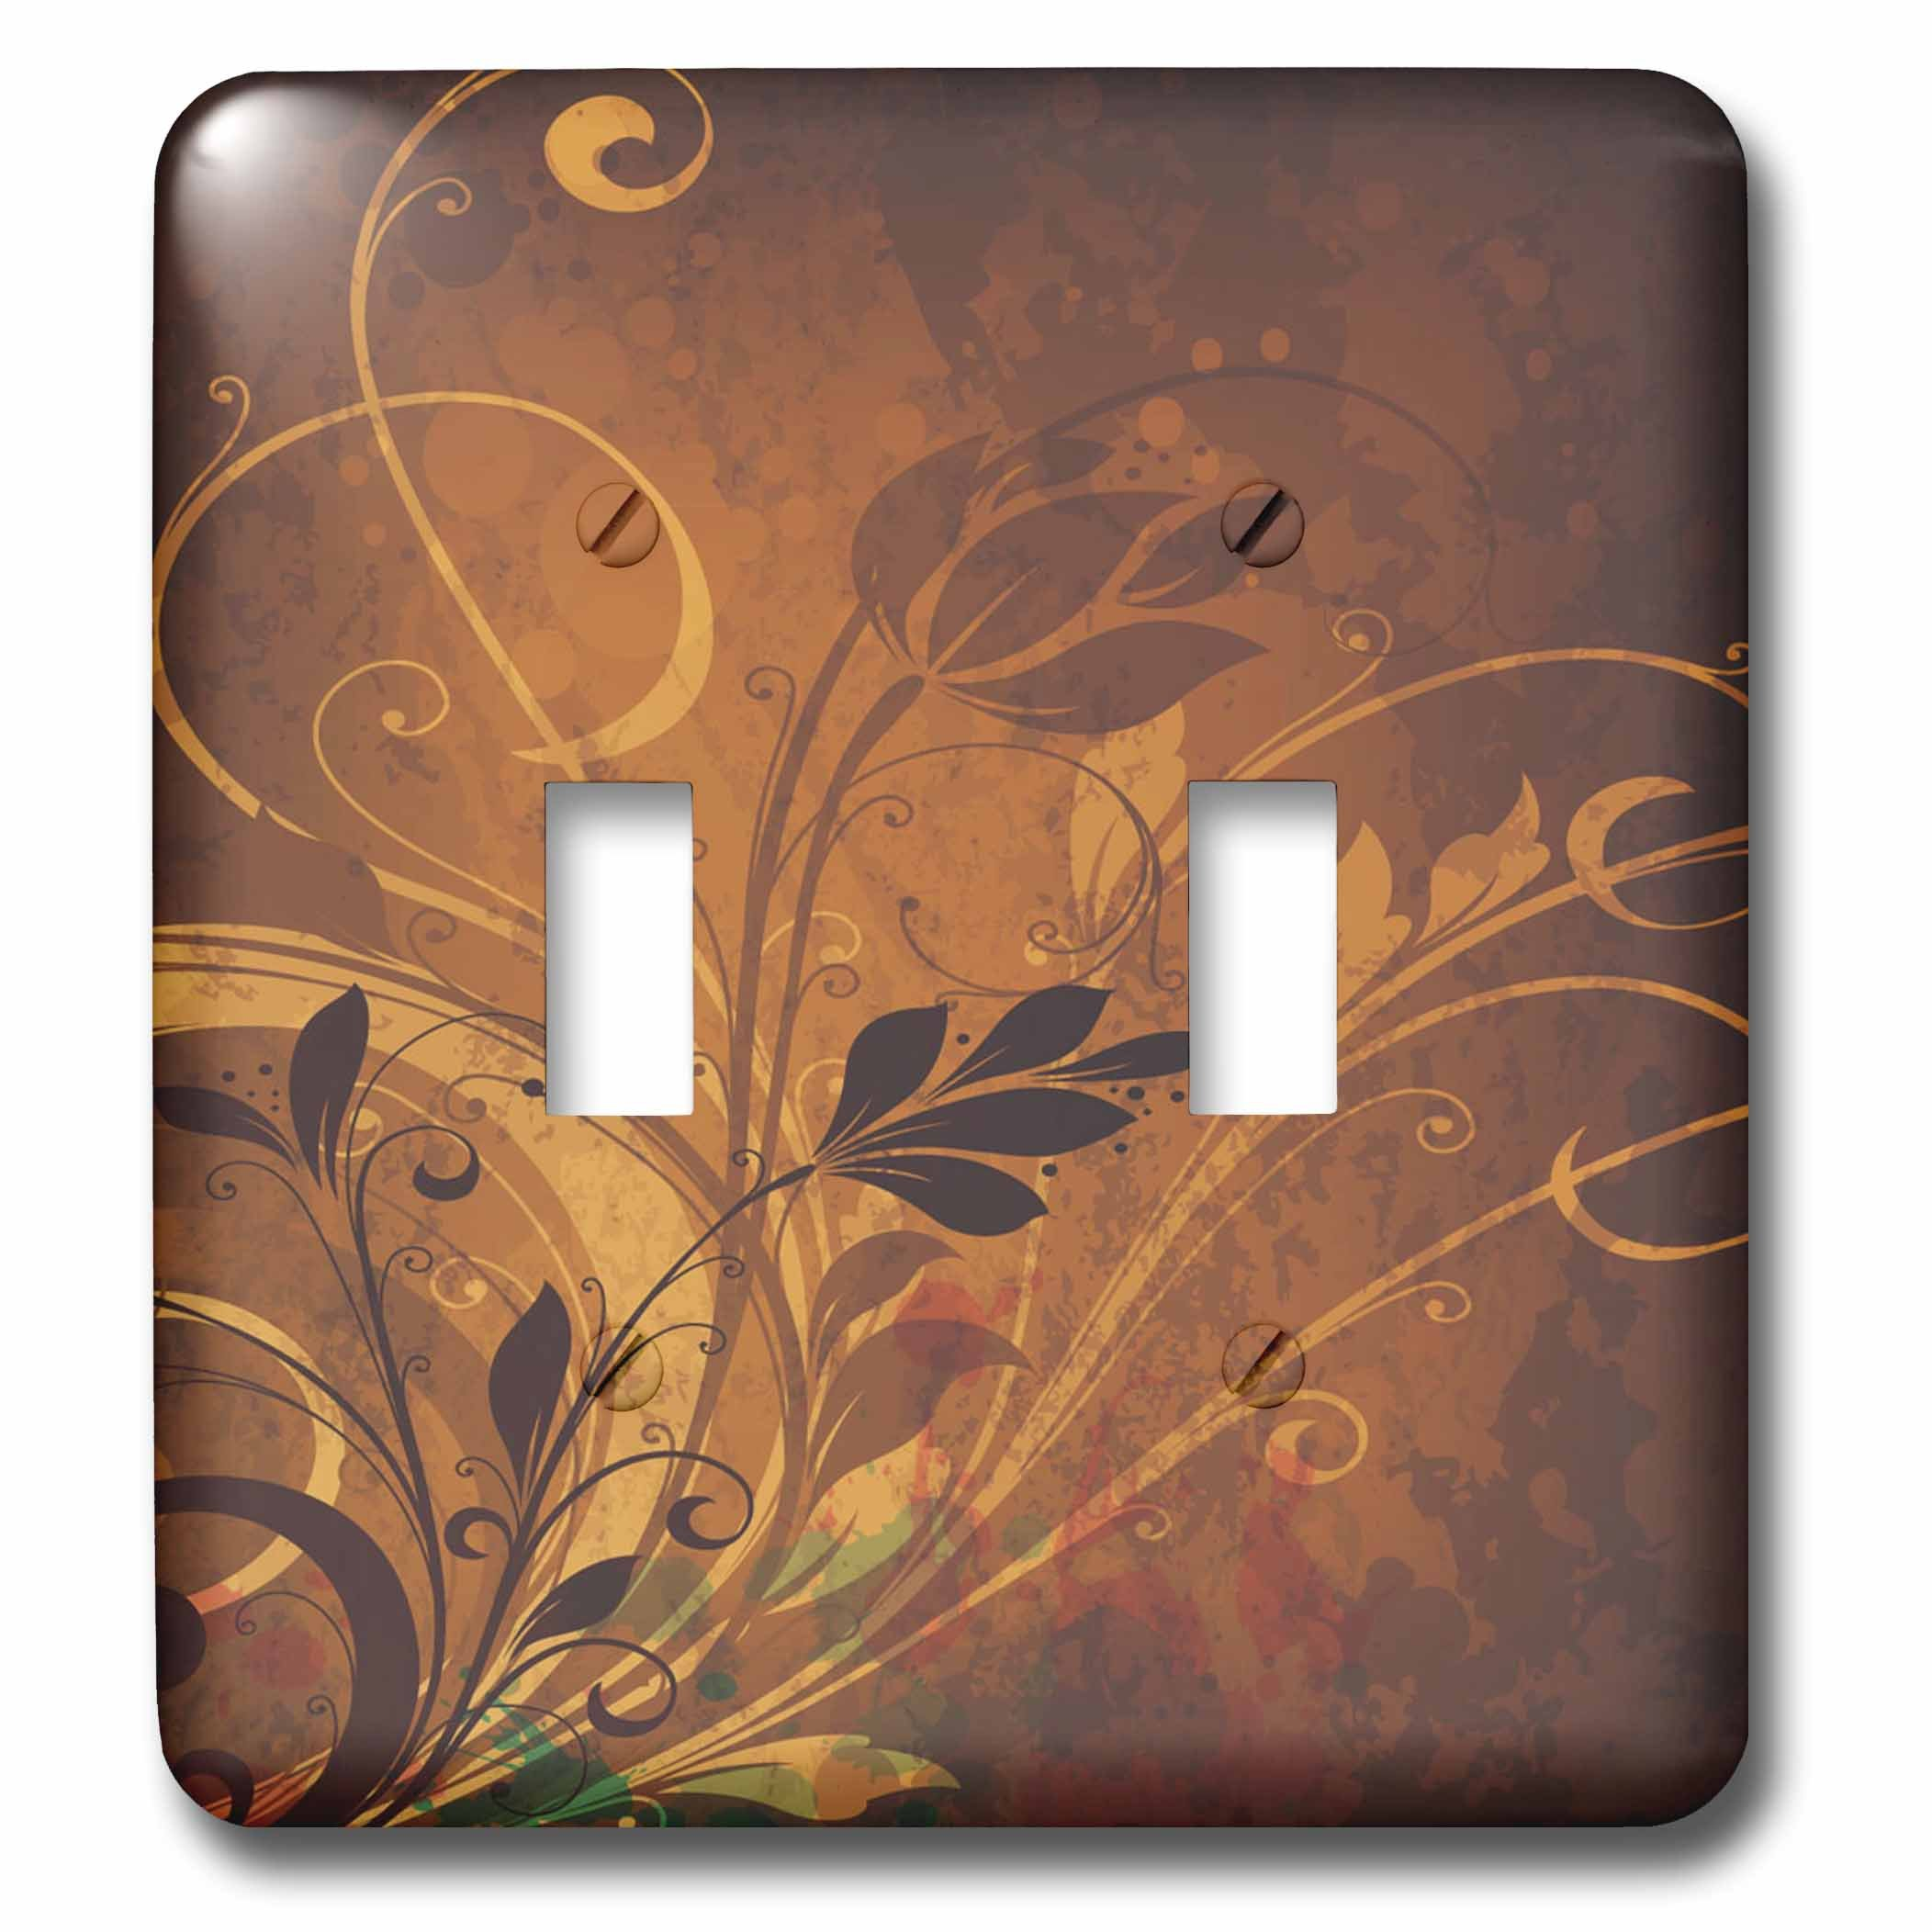 3dRose lsp_78562_2 Pretty Brown and Tan Flower Flourishes - Double Toggle Switch